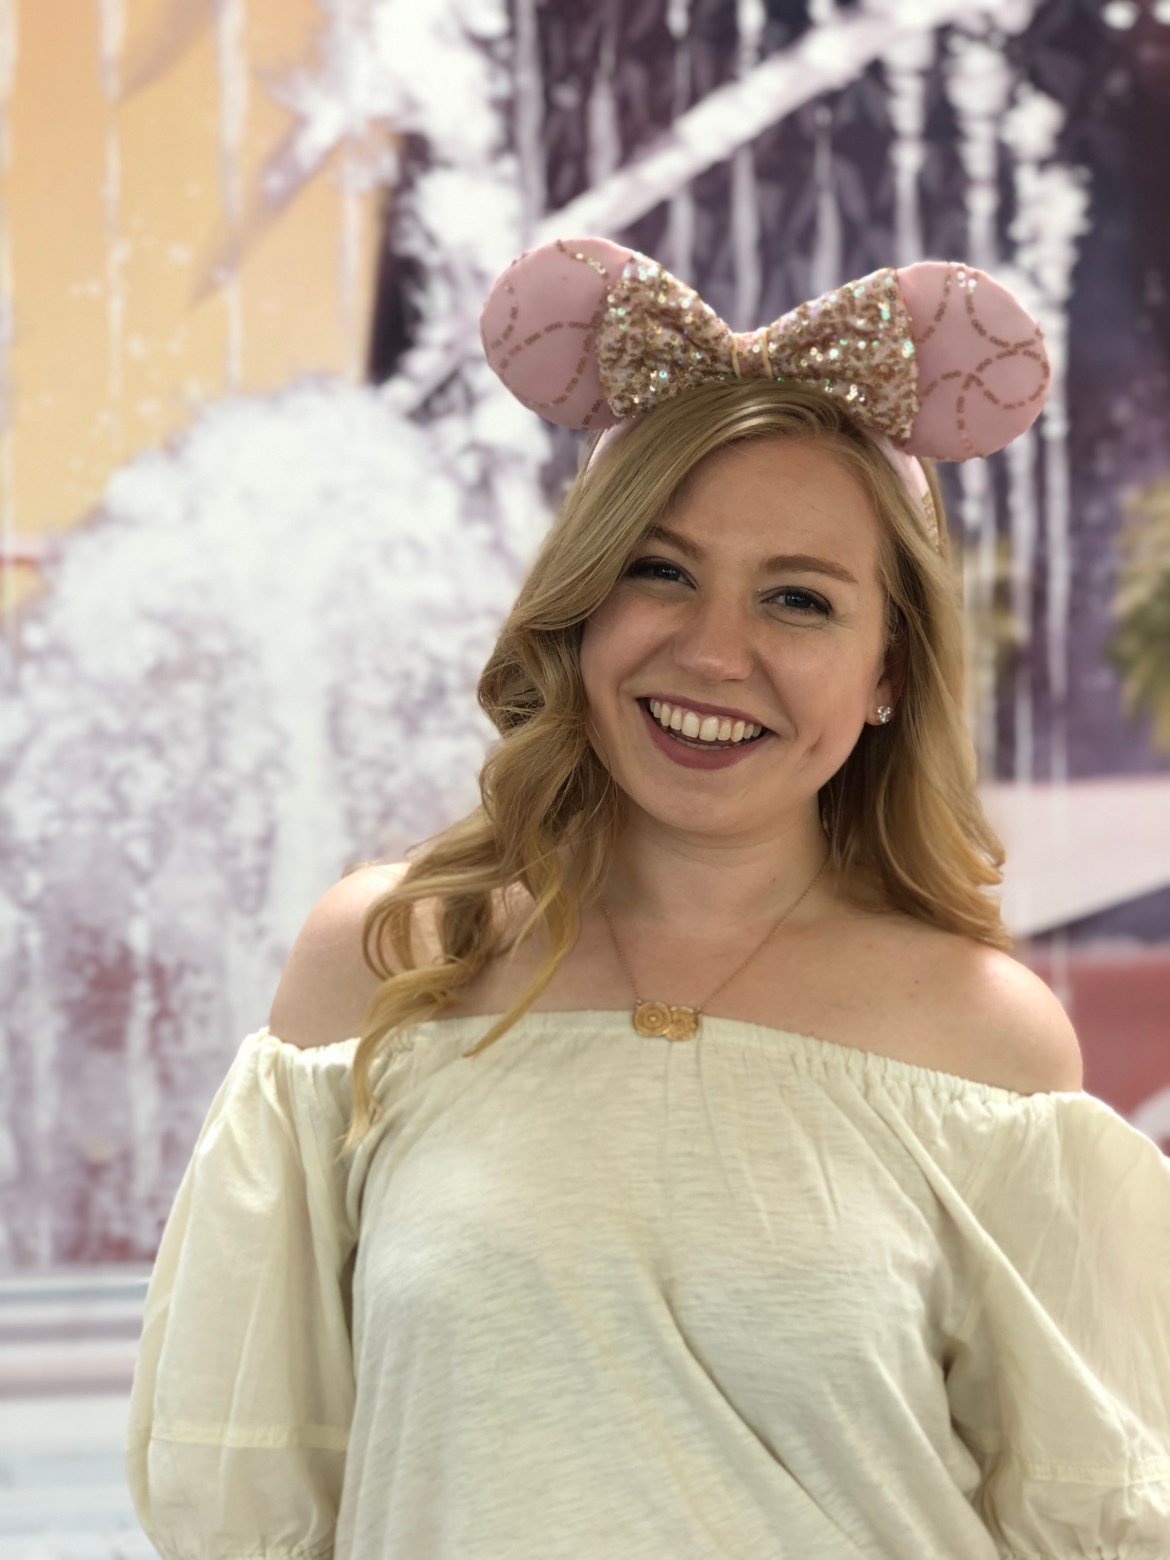 Have your own photo shoot at Disney and show off your favorite Disney Style.